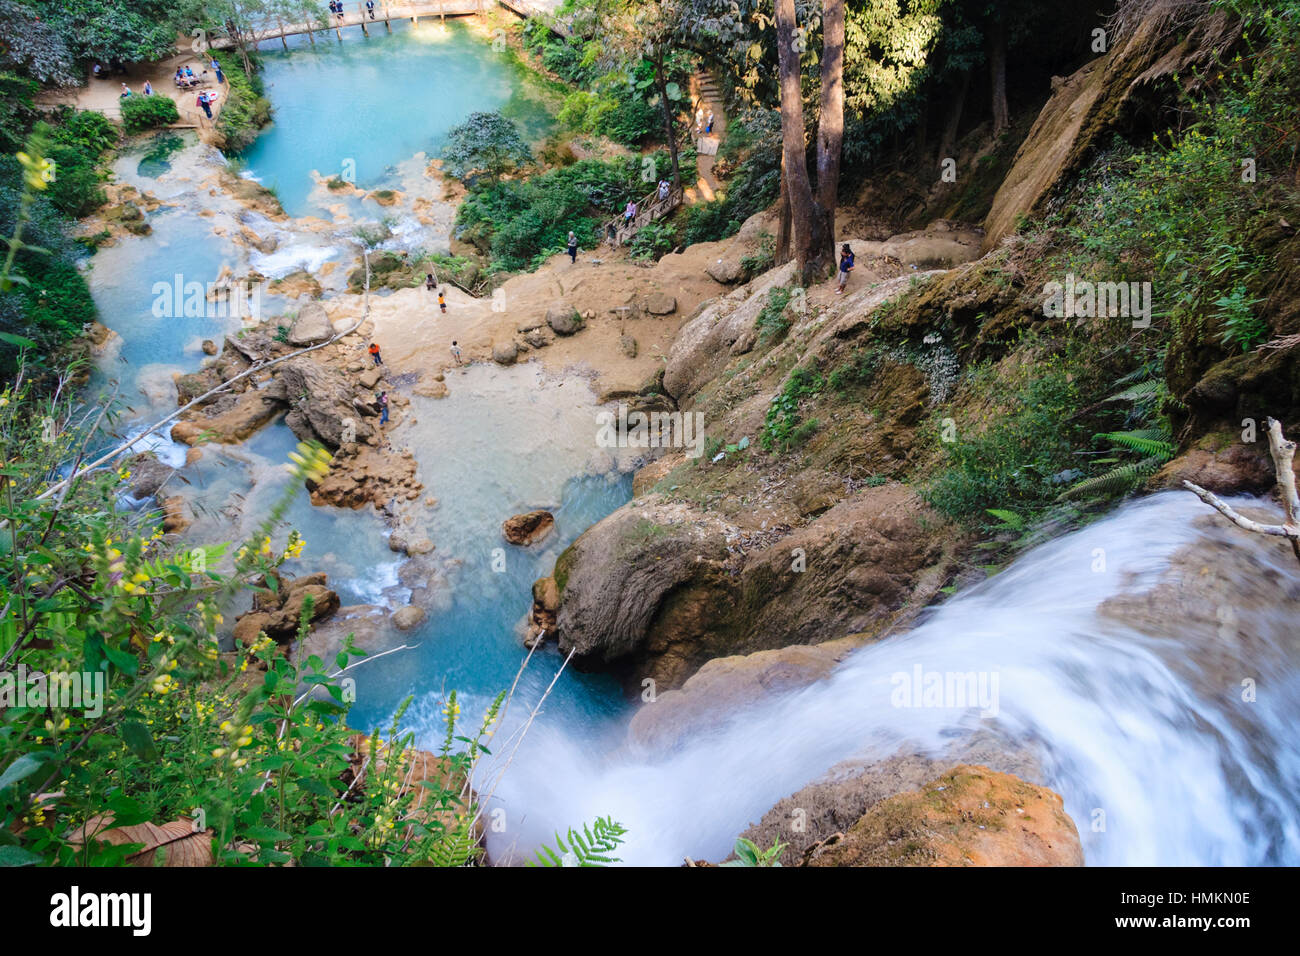 High angle view of Kuang Si Waterfalls, 29 km south of Luang Prabang, Laos, South East Asia - Stock Image